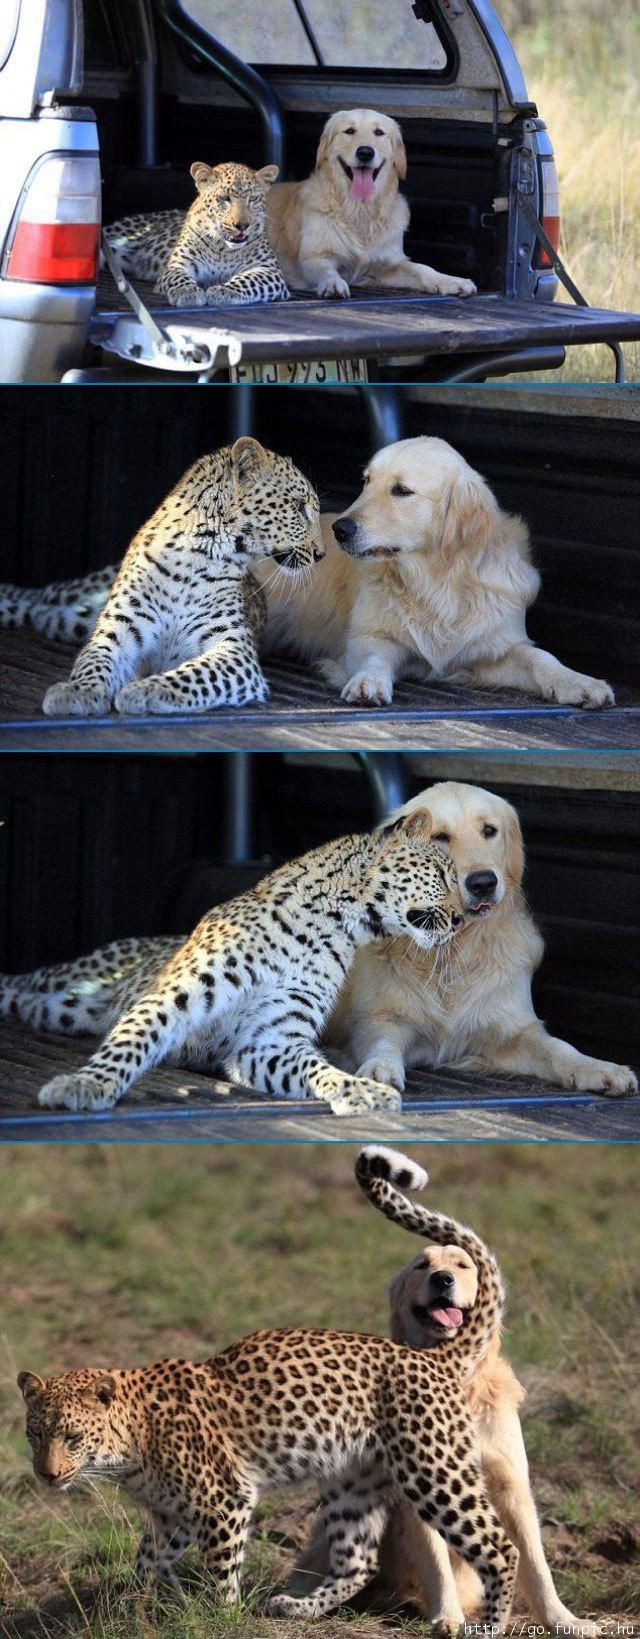 Uhhh...this kinda concerns me...what with the cheetah being in the back of a truck...with something it might consider food...but those two things aside...D'AWWWWW! Just proves that housecats really do think they're these guys...